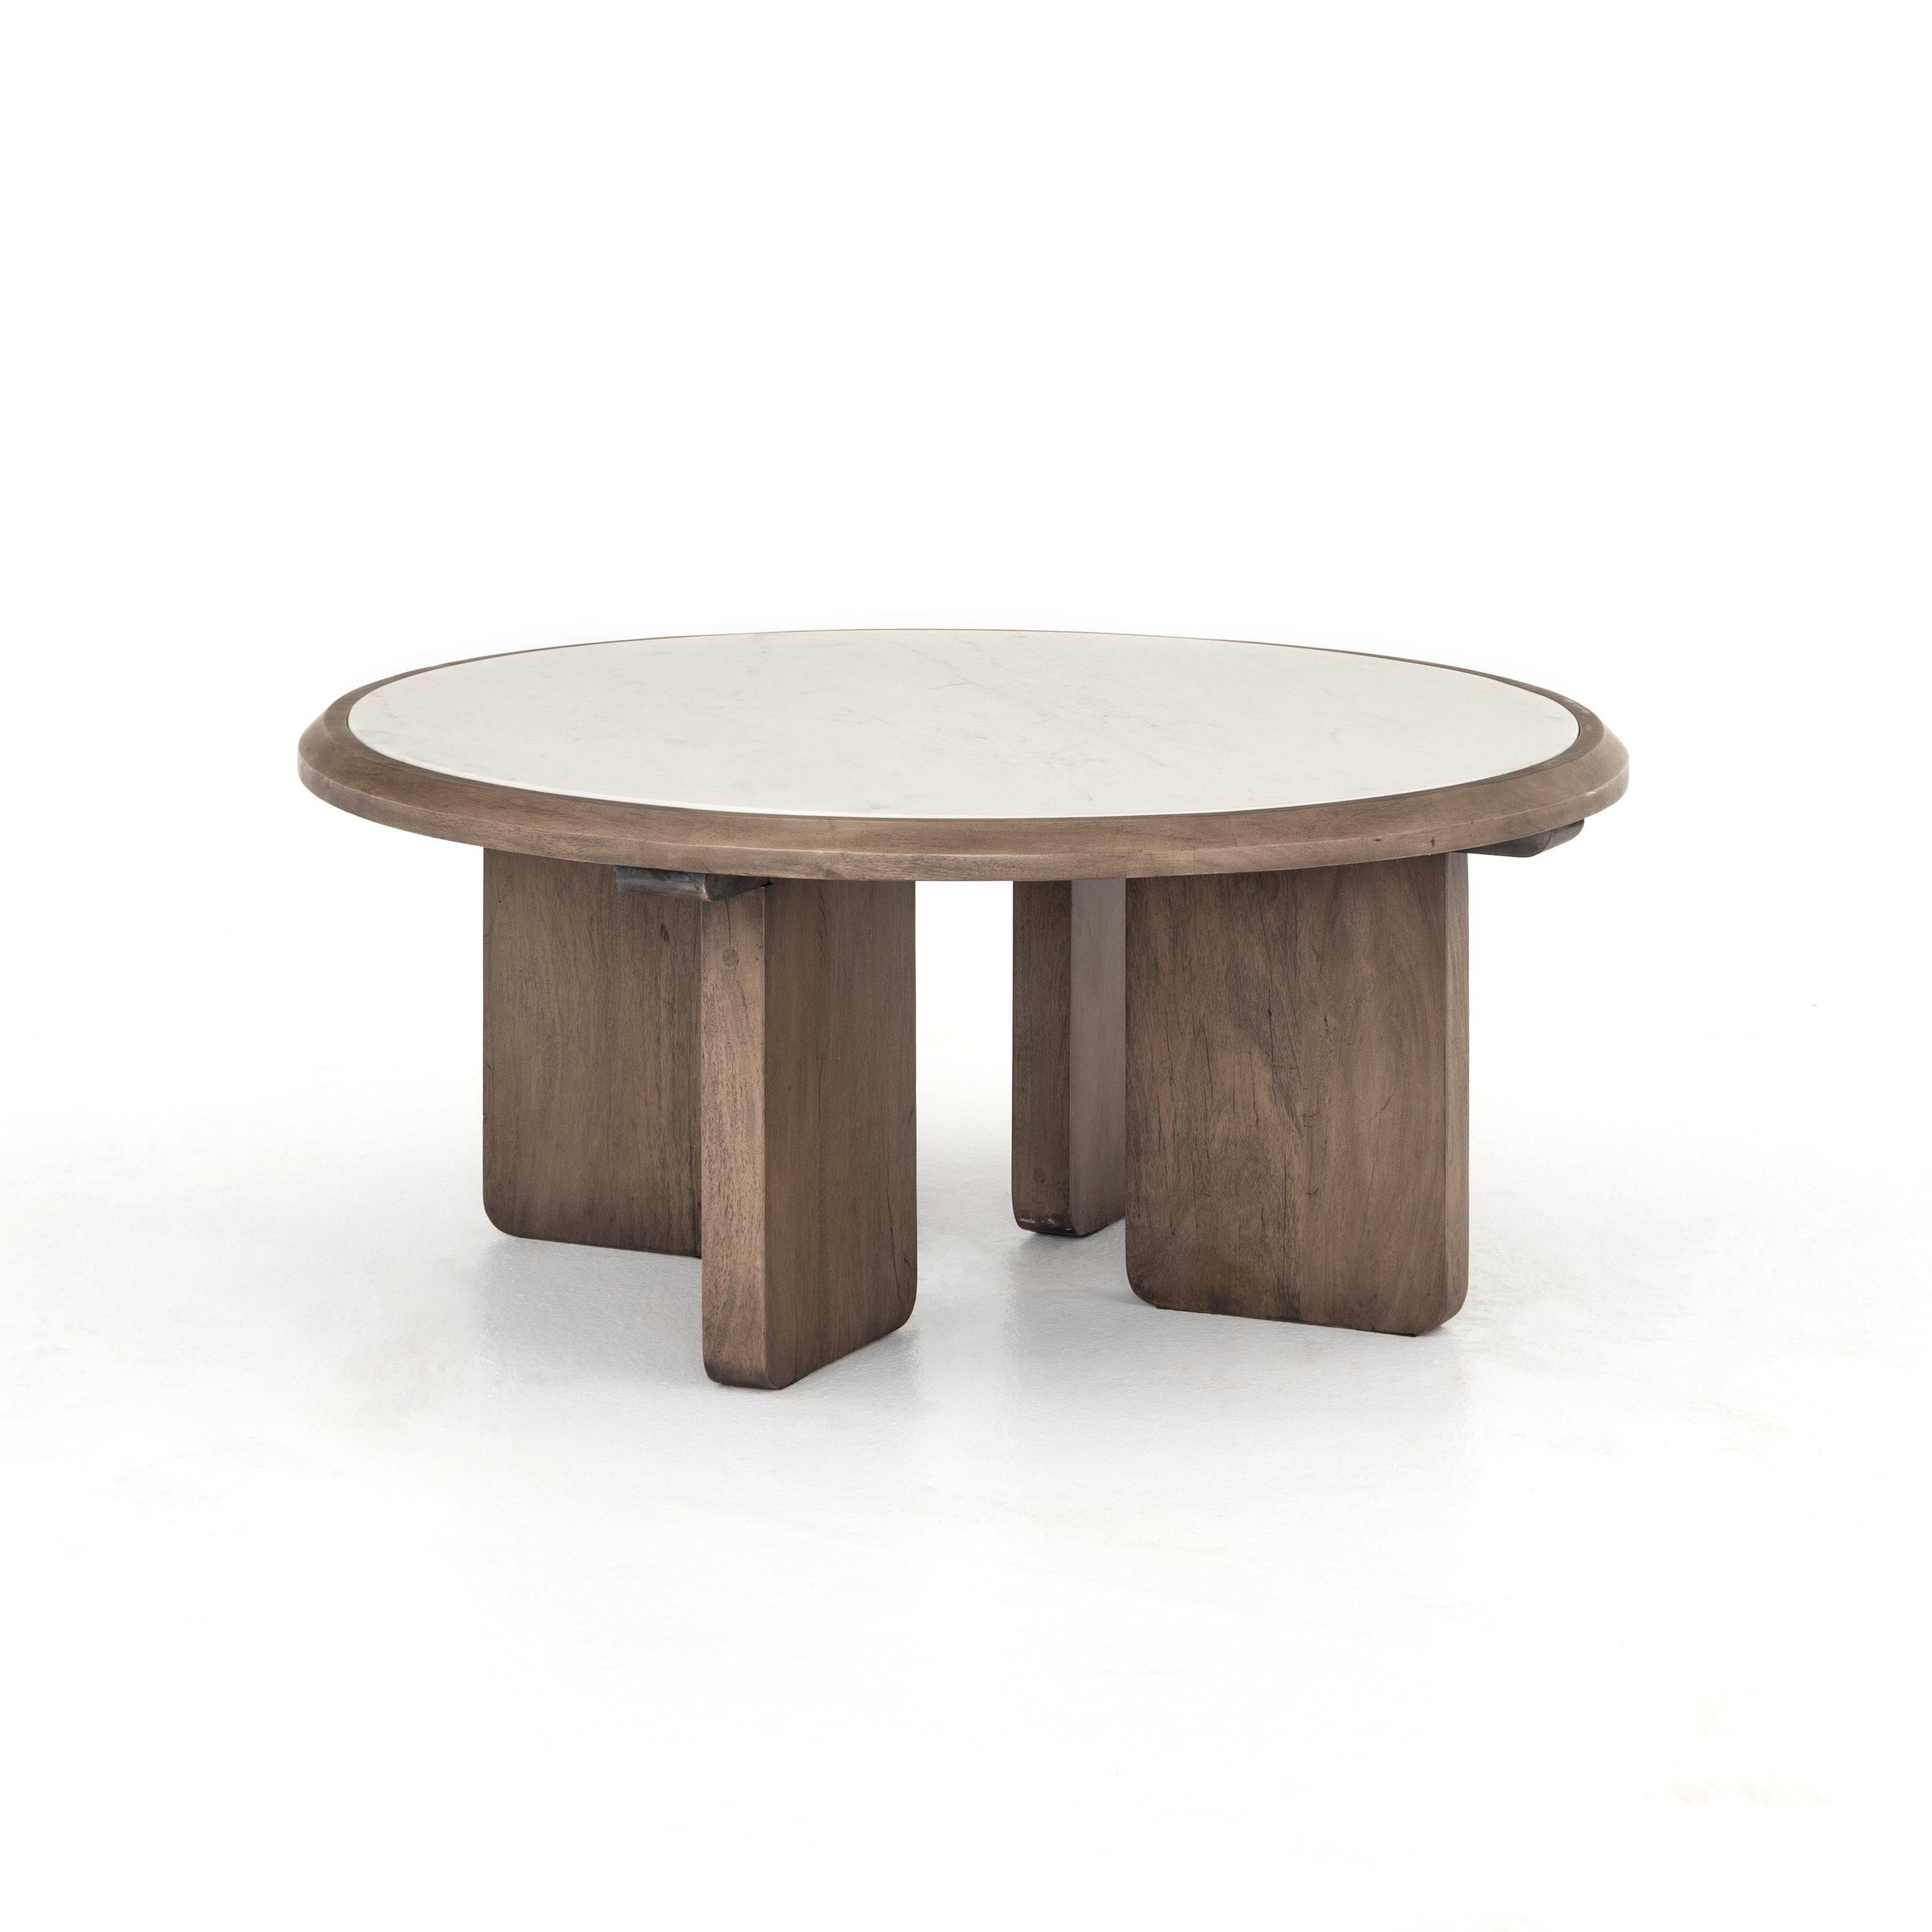 Britton 39 In 2021 Coffee Table Marble Top Coffee Table Round Coffee Table [ 3118 x 3118 Pixel ]